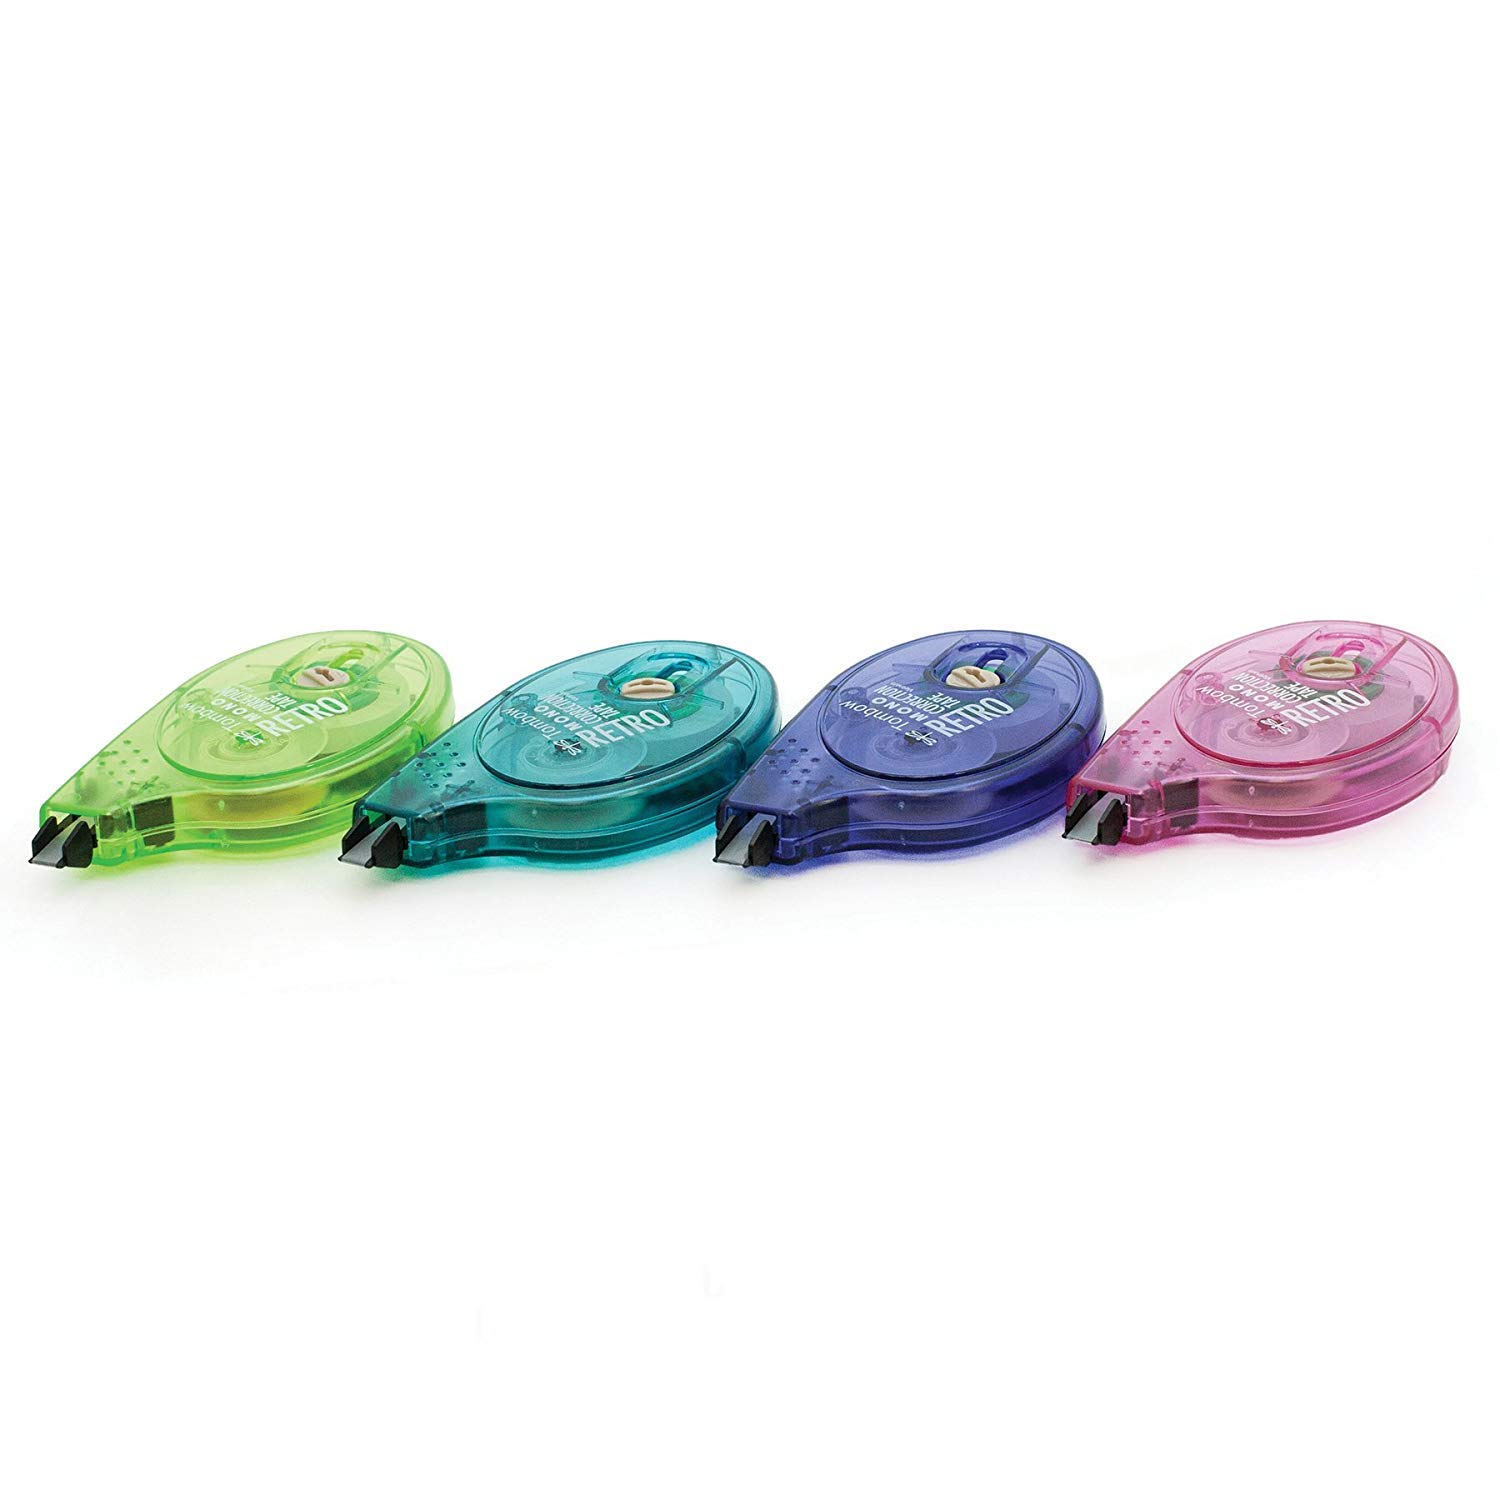 Tombow 68723 MONO Retro Correction Tape, Assorted Colors, 10-Pack. Colorful, Easy To Use Applicator for Instant Corrections - Pack of 5 by Tombow (Image #4)